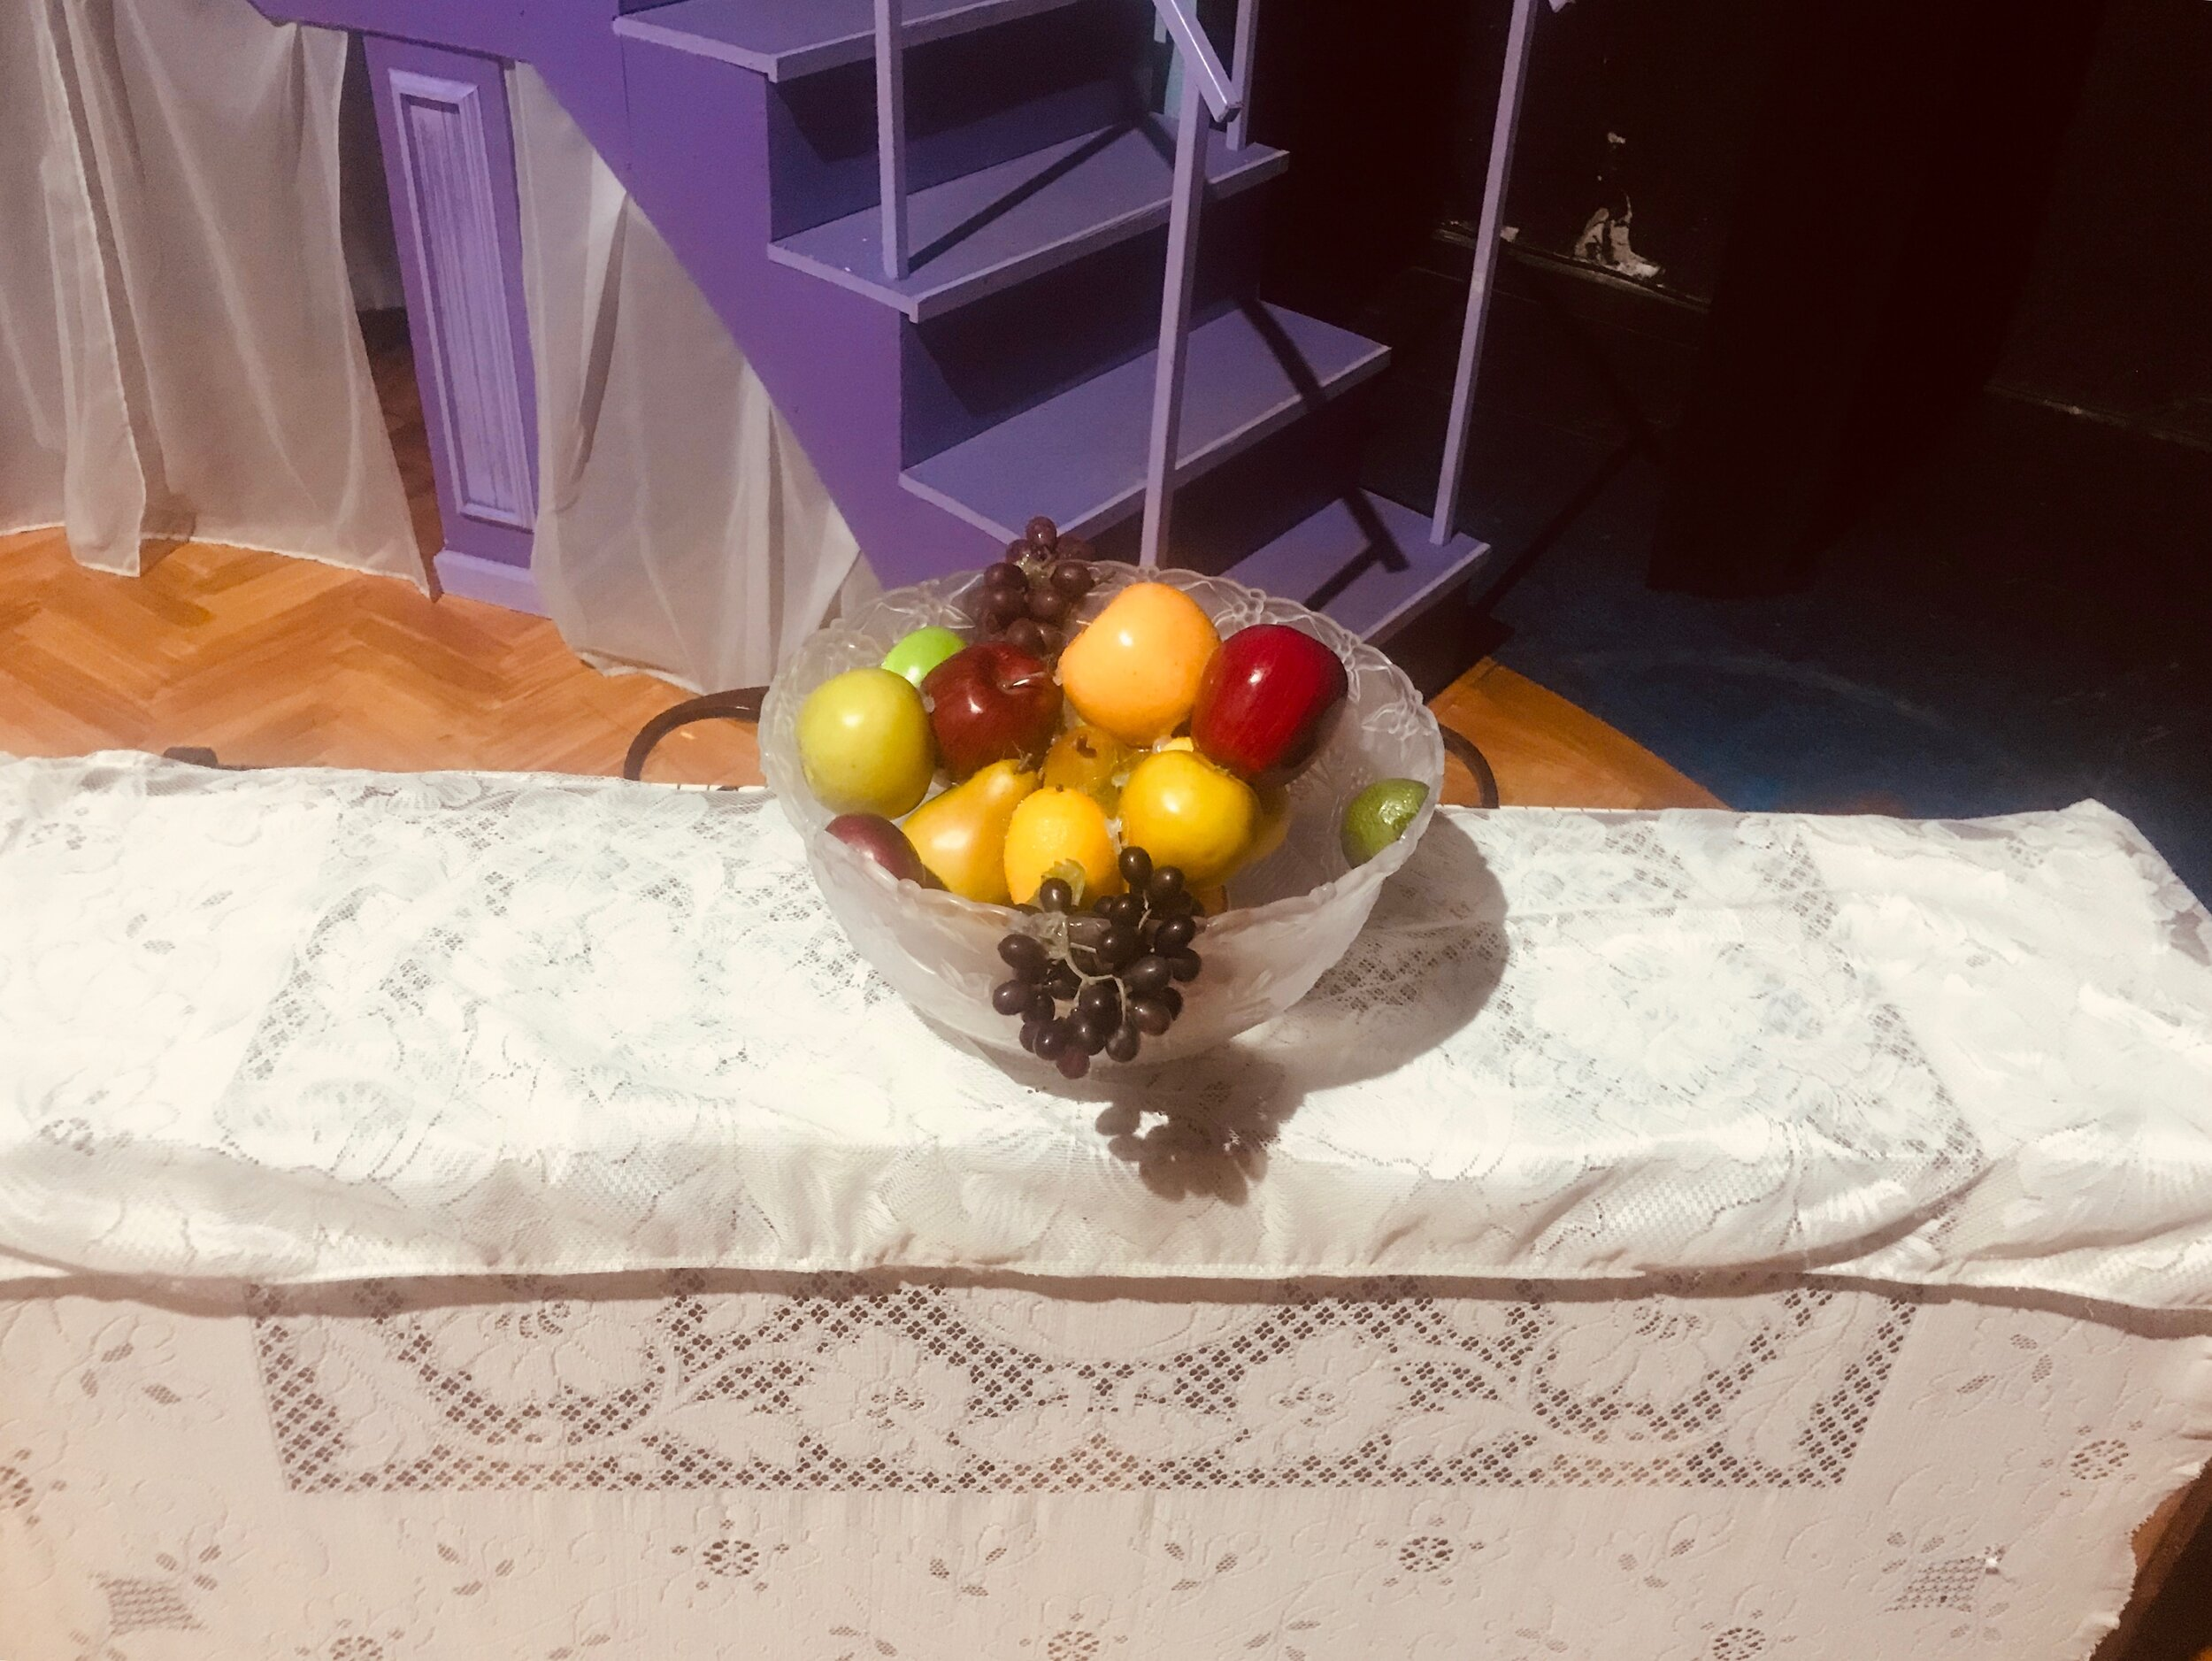 Miss Anne de Bourgh's Fruit Bowl- Pride and Prejudice- Creede Repertory Theatre 2019  Costume Design by Amy Sutton. All designs by the seasonal staff of CRT. Photos courtesy of John Gary Brown.